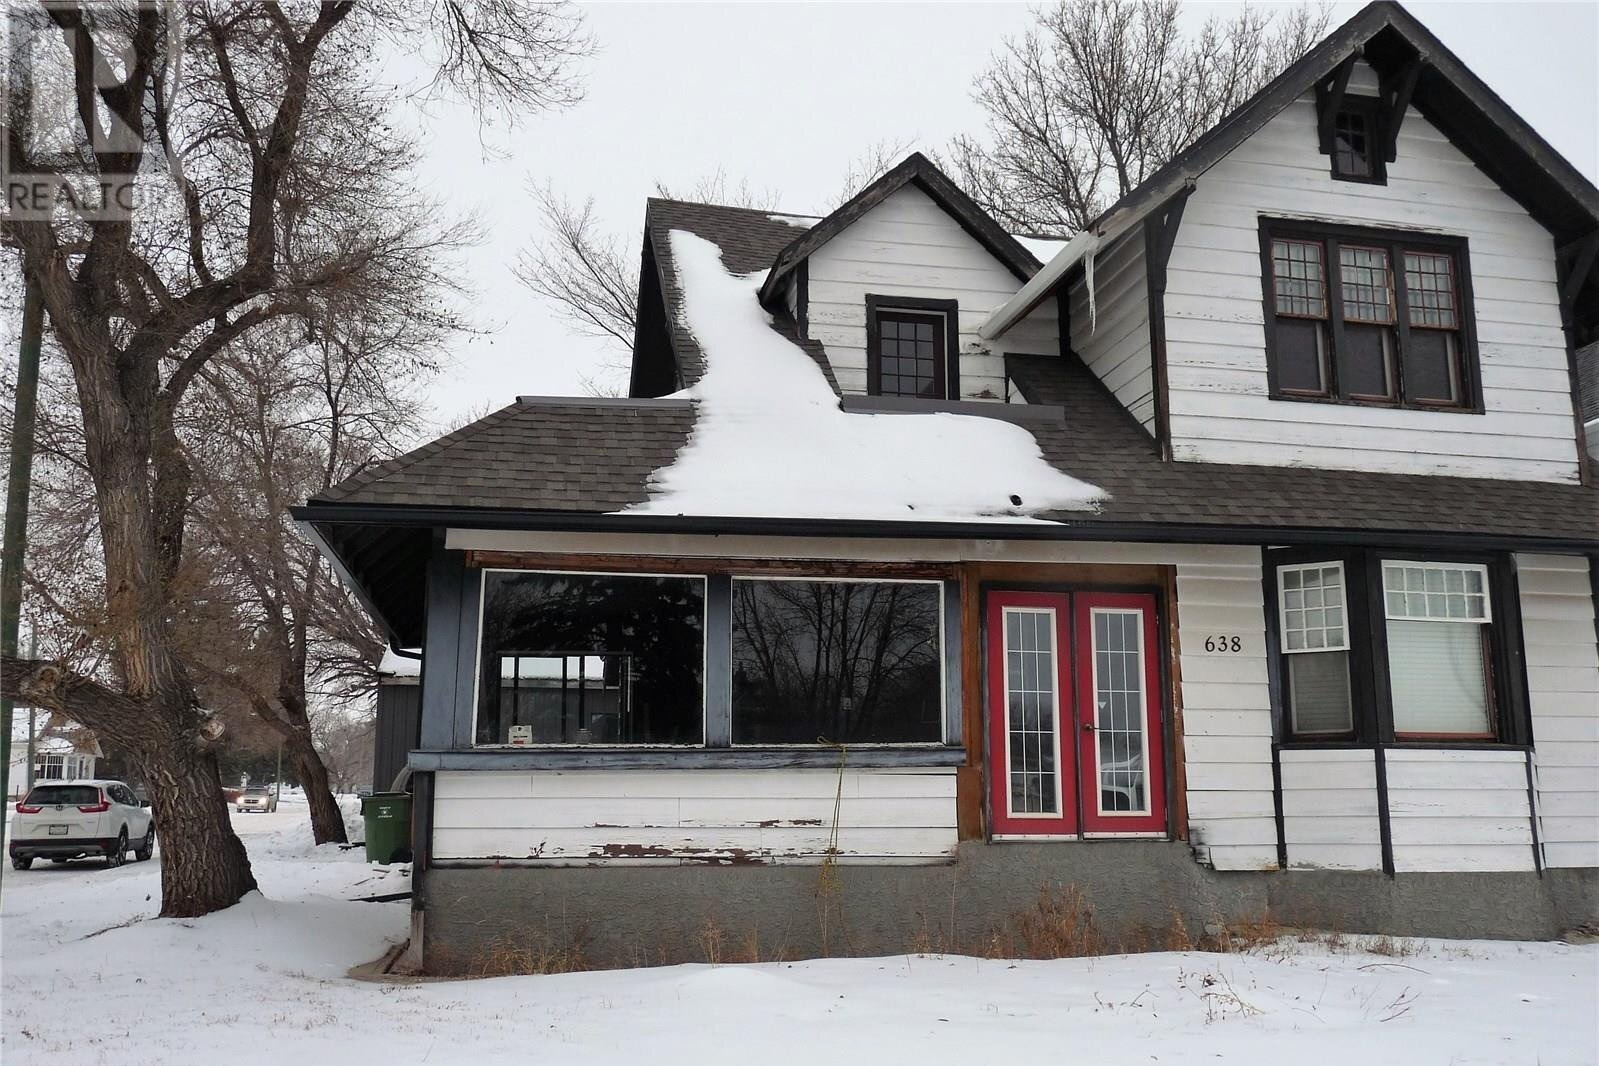 House for sale at 638 Oxford St W Moose Jaw Saskatchewan - MLS: SK833977